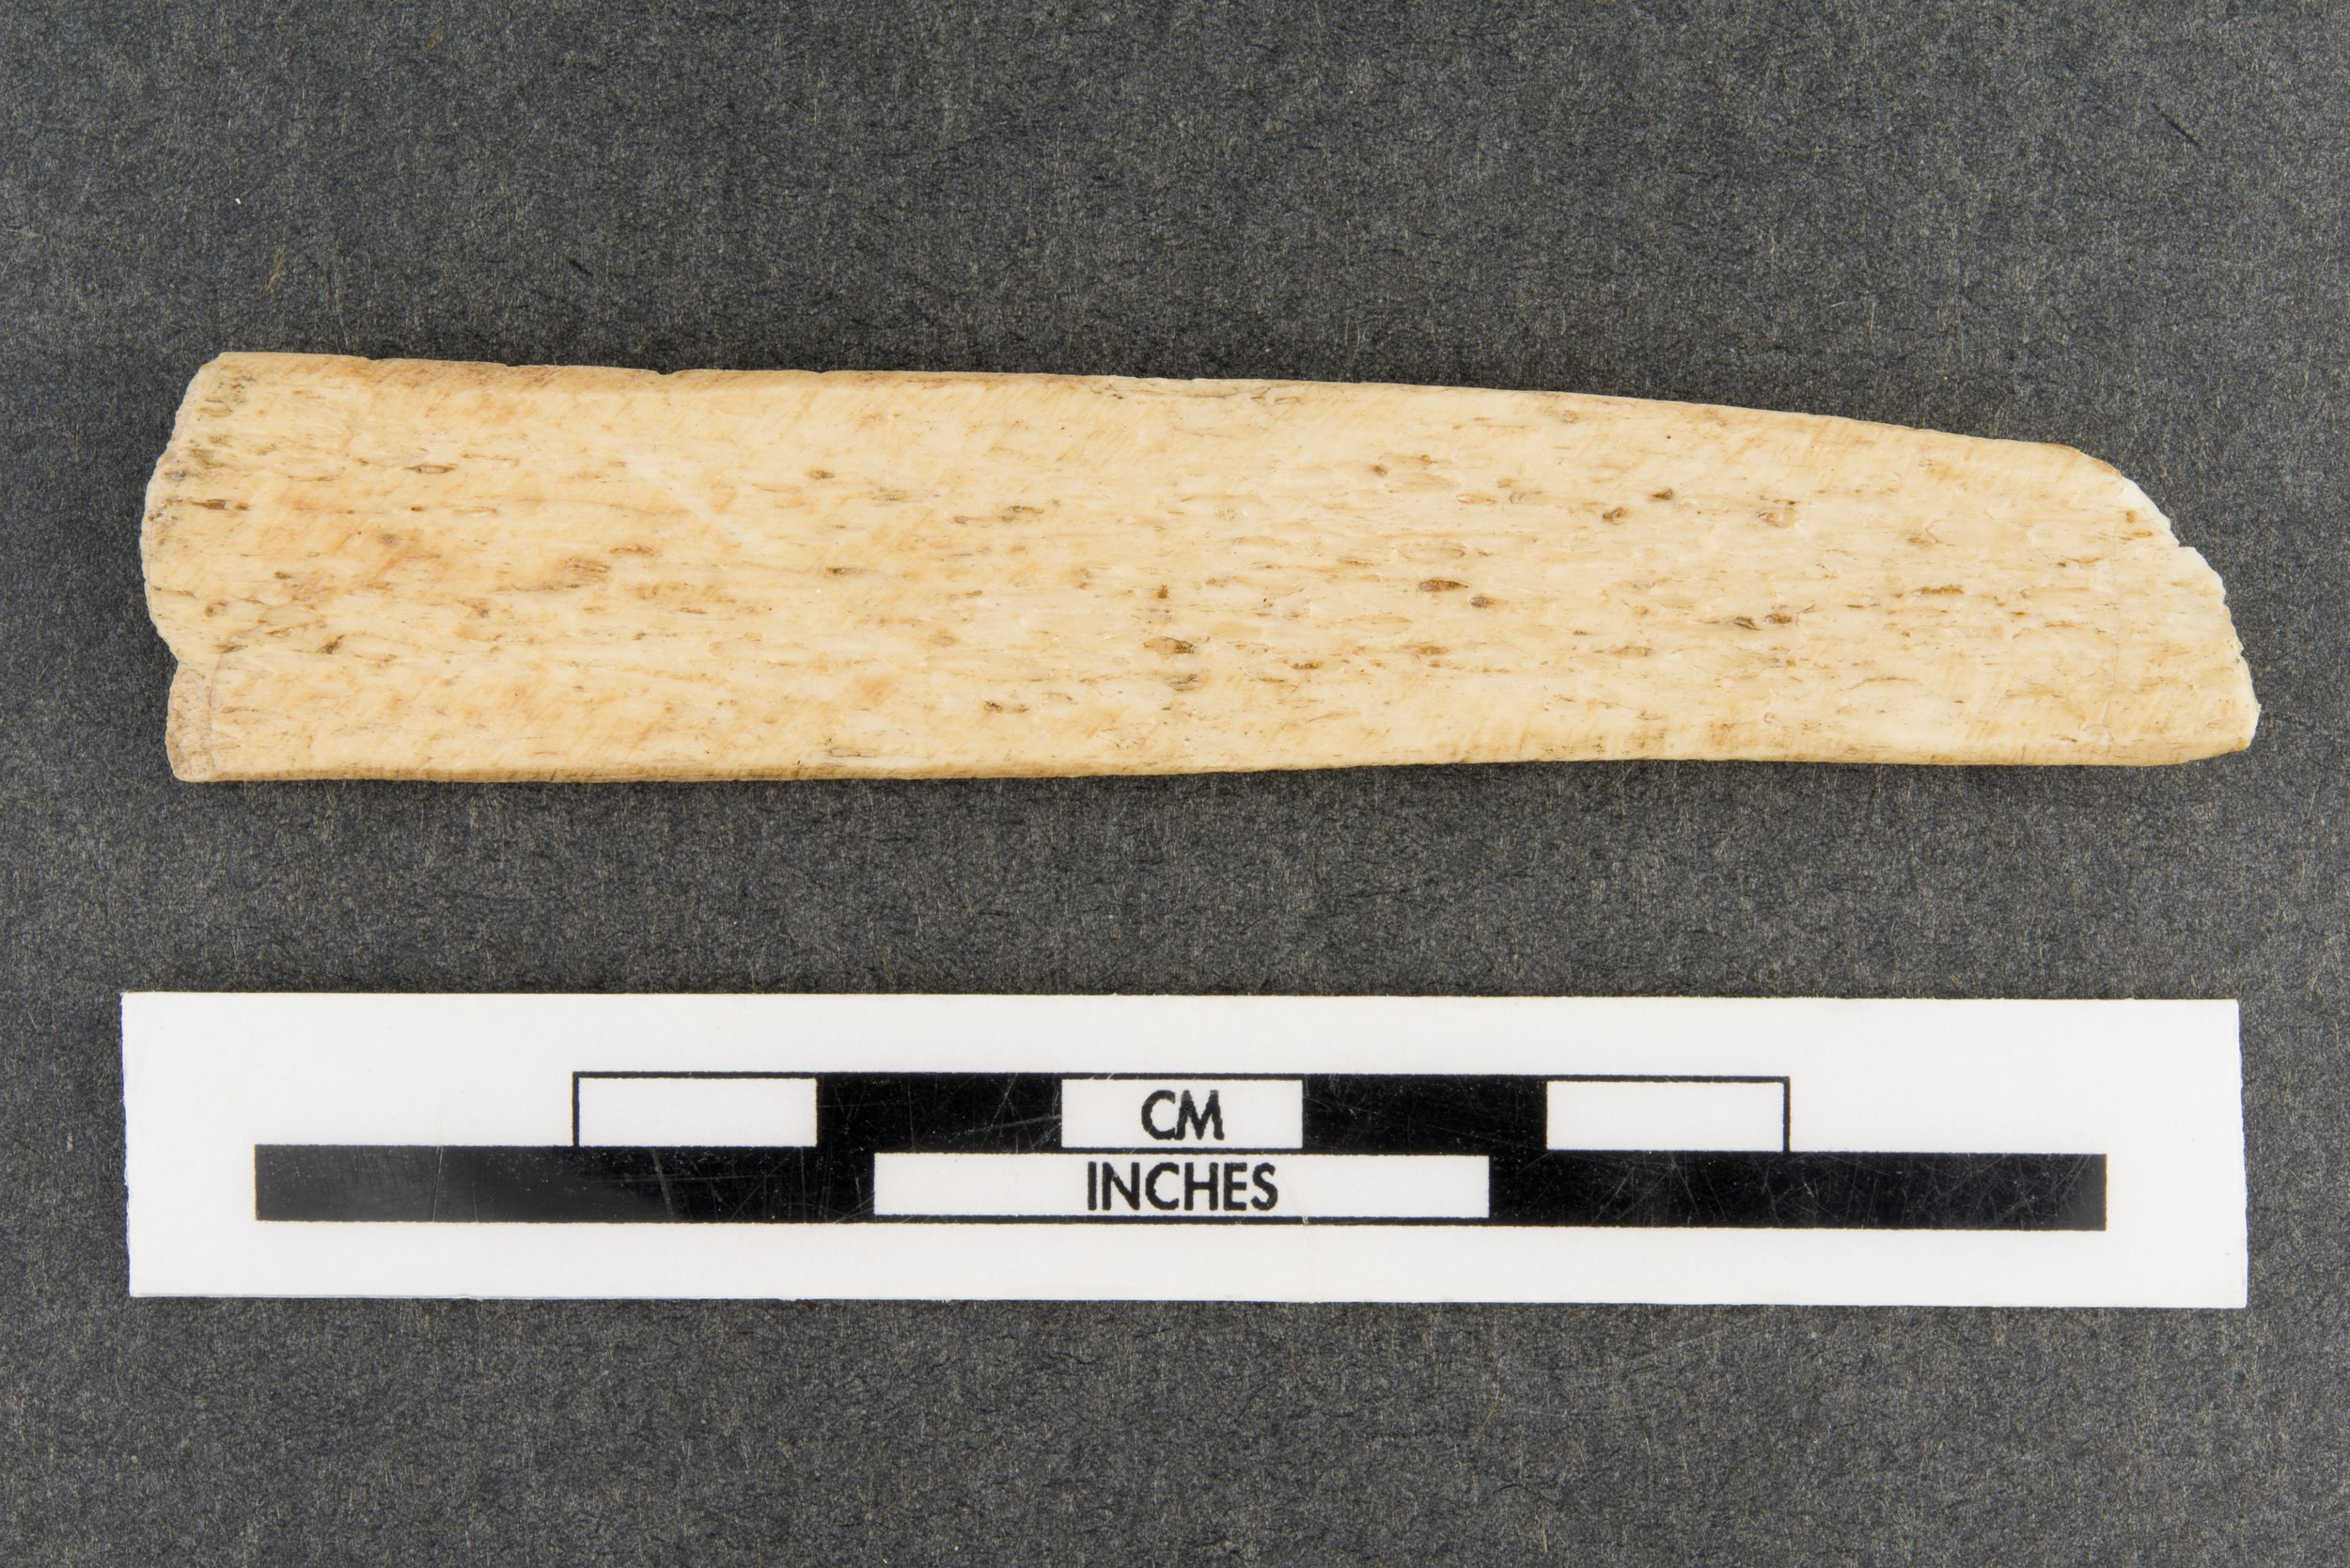 Bone Rasp from the Saxman Site, 14RC301 - 2